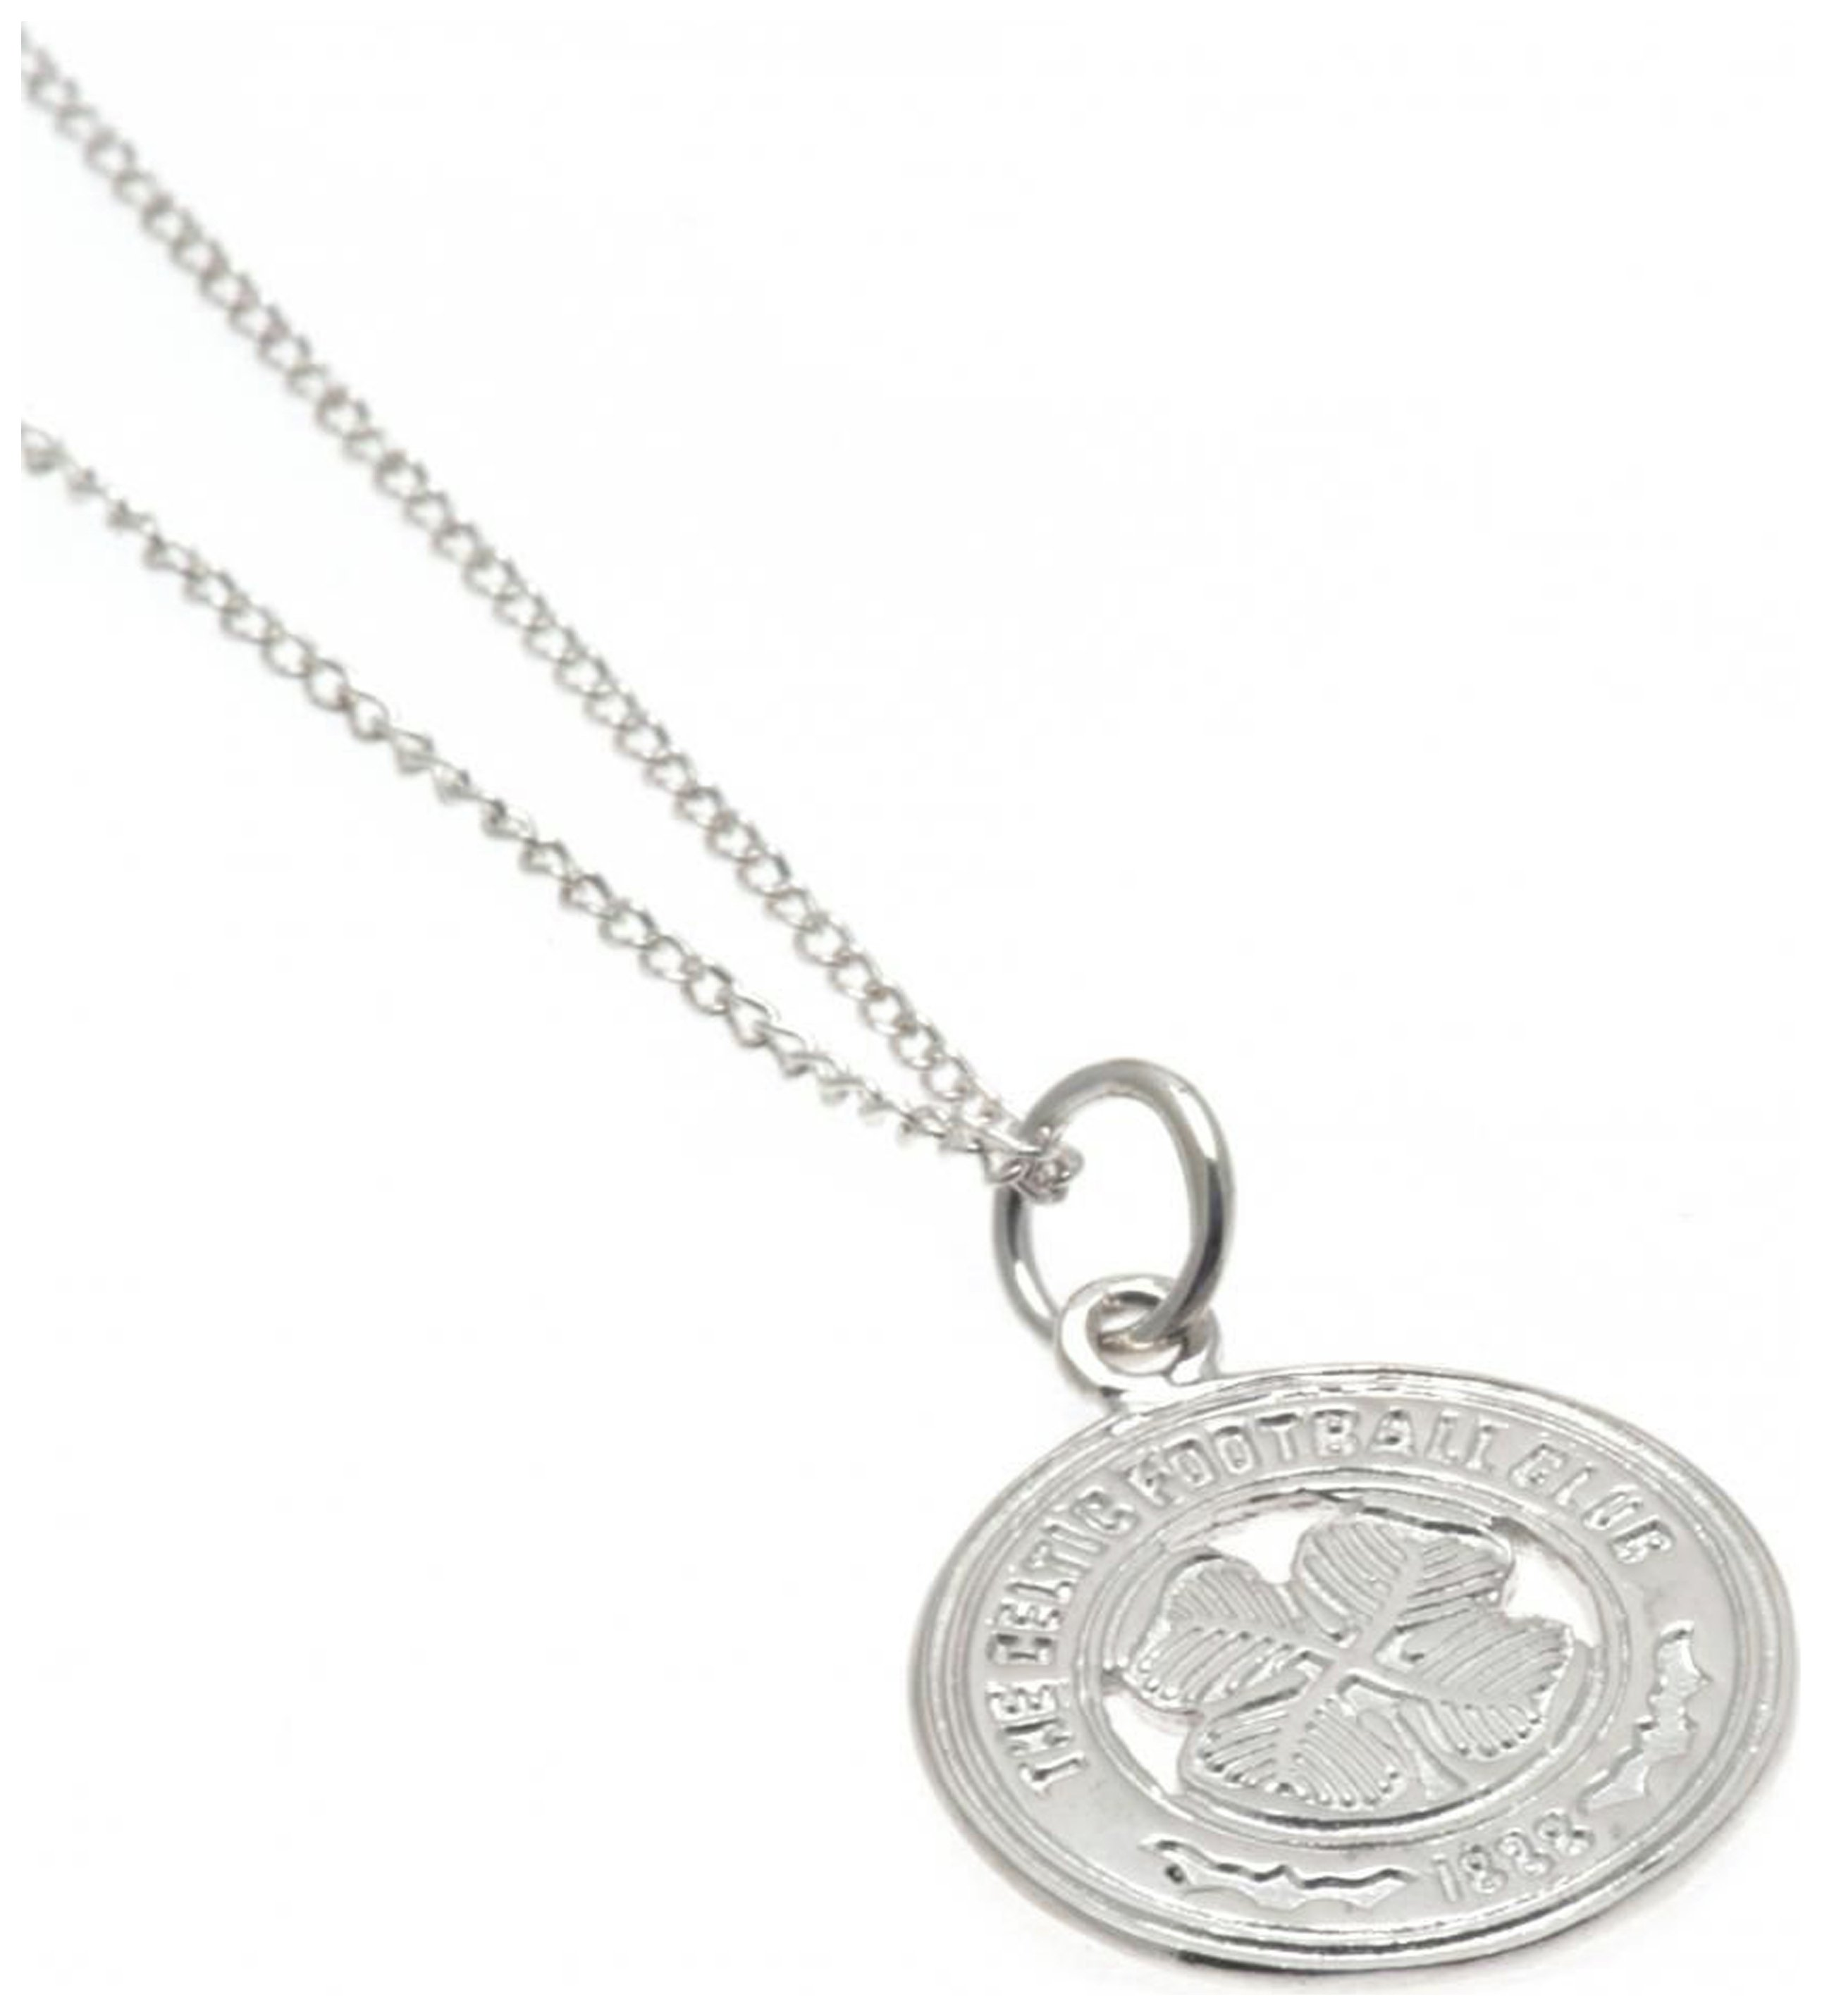 Image of Sterling Silver Chelsea FC Crest Pendant